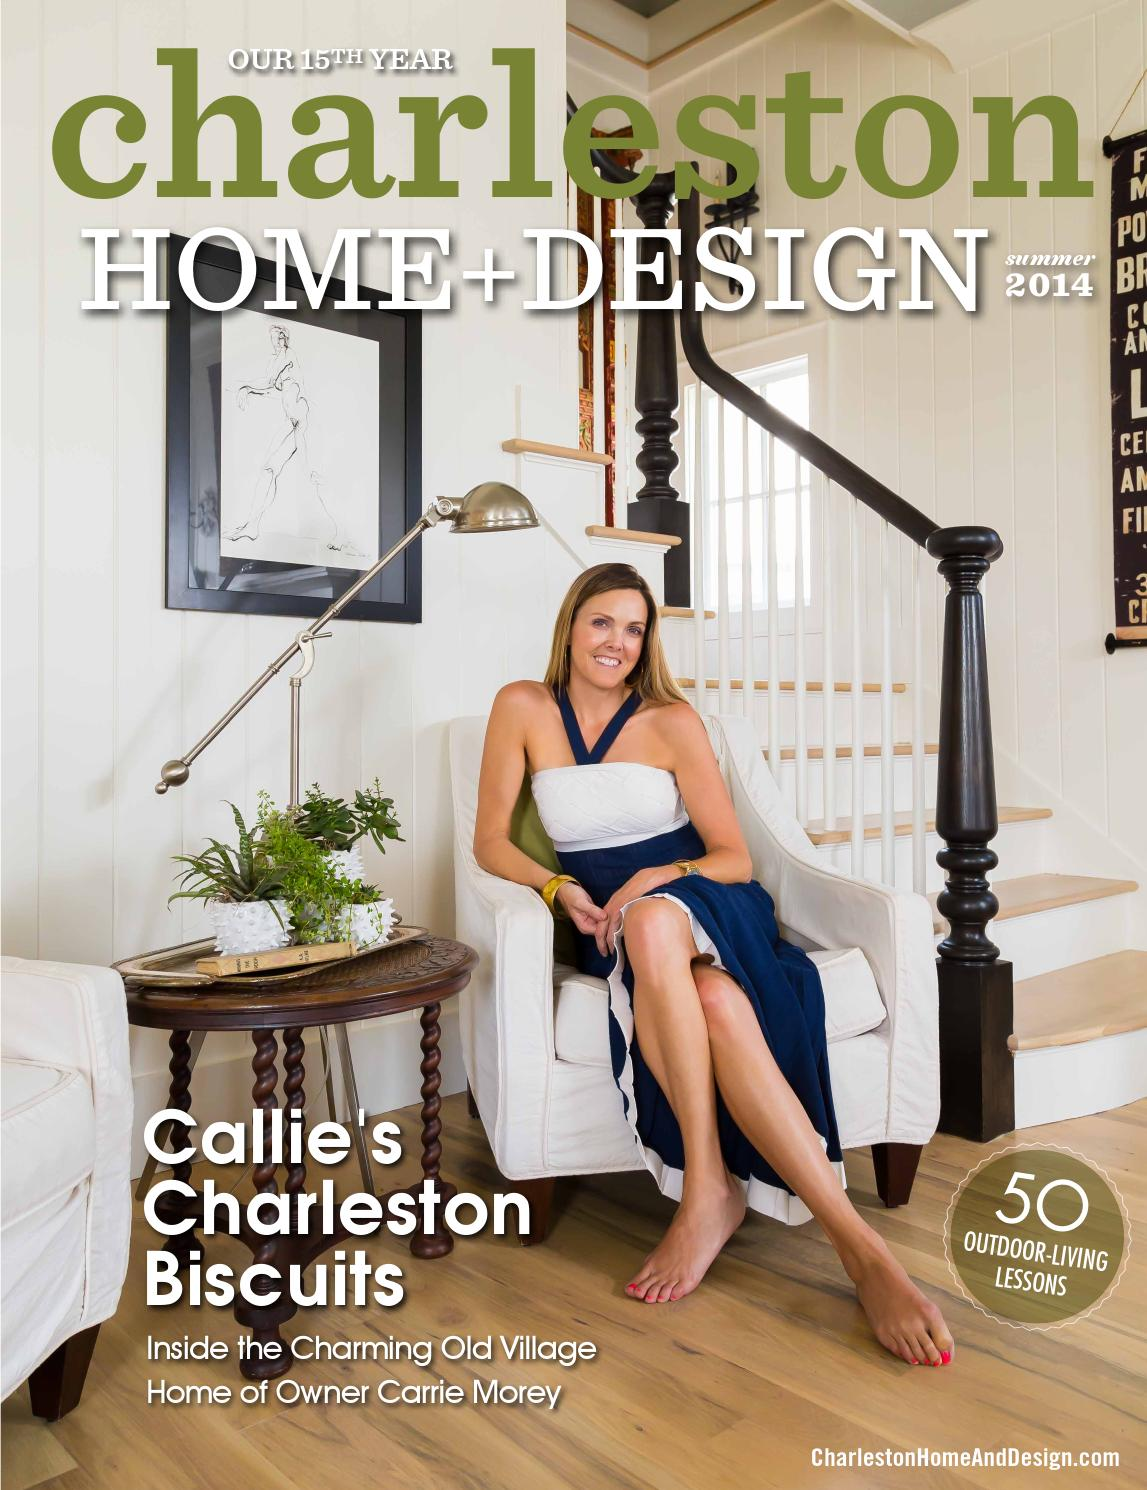 Home Design Magazine top 10 interior design magazines in the usa house beautiful interior design magazines top 10 interior Charleston Home Design Magazine Summer 2014